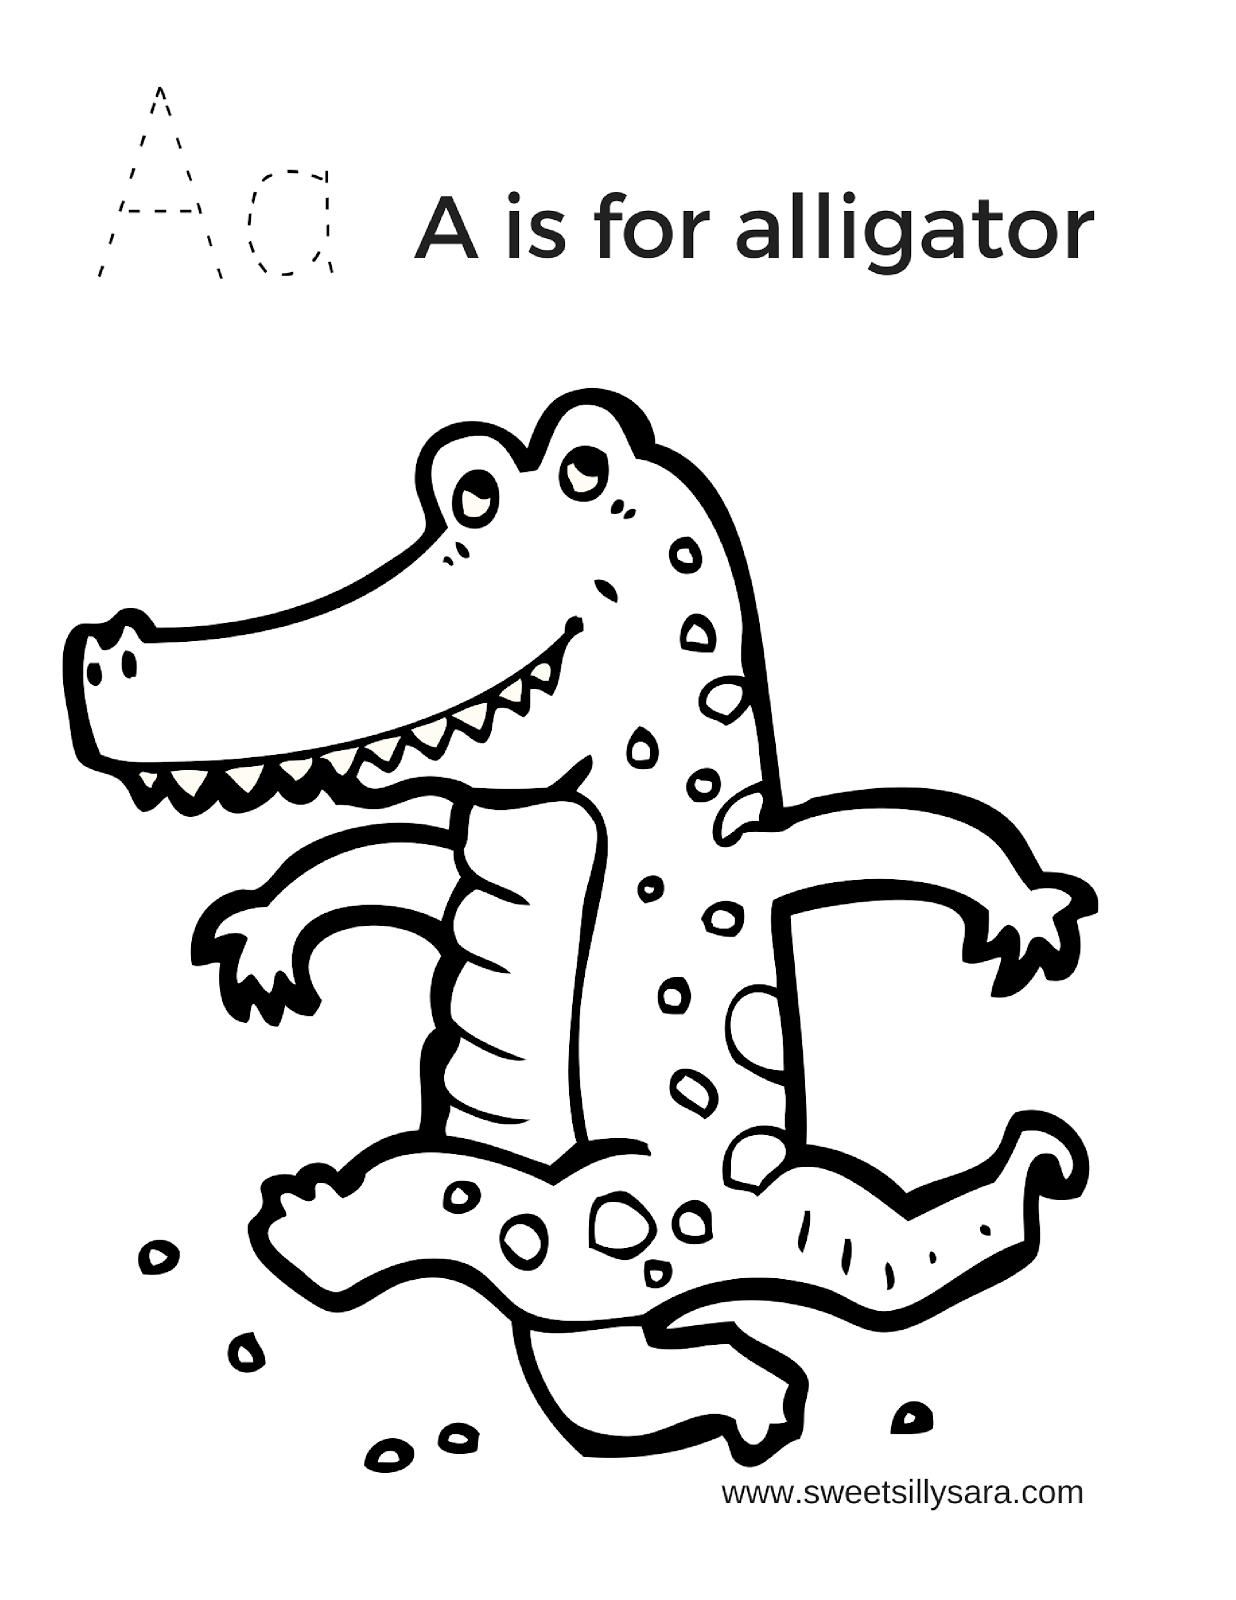 coloring page alligator sweet silly sara a is for alligator coloring page alligator coloring page